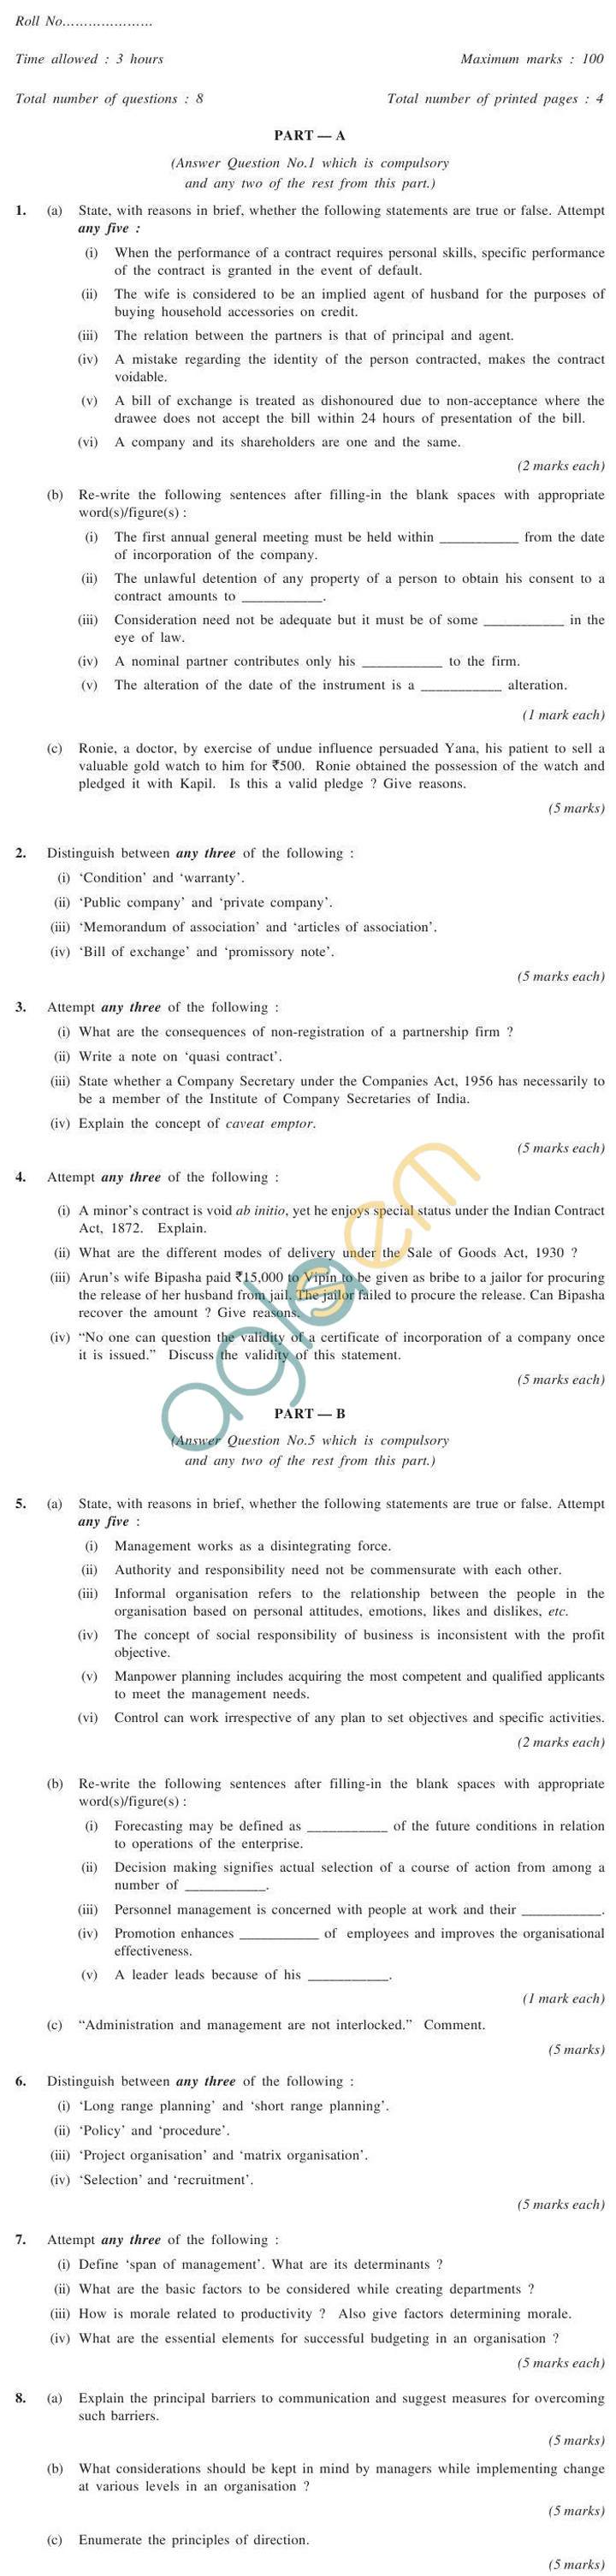 CS Foundation Question Papers Jun 2012 - Elements of Business Laws and Management